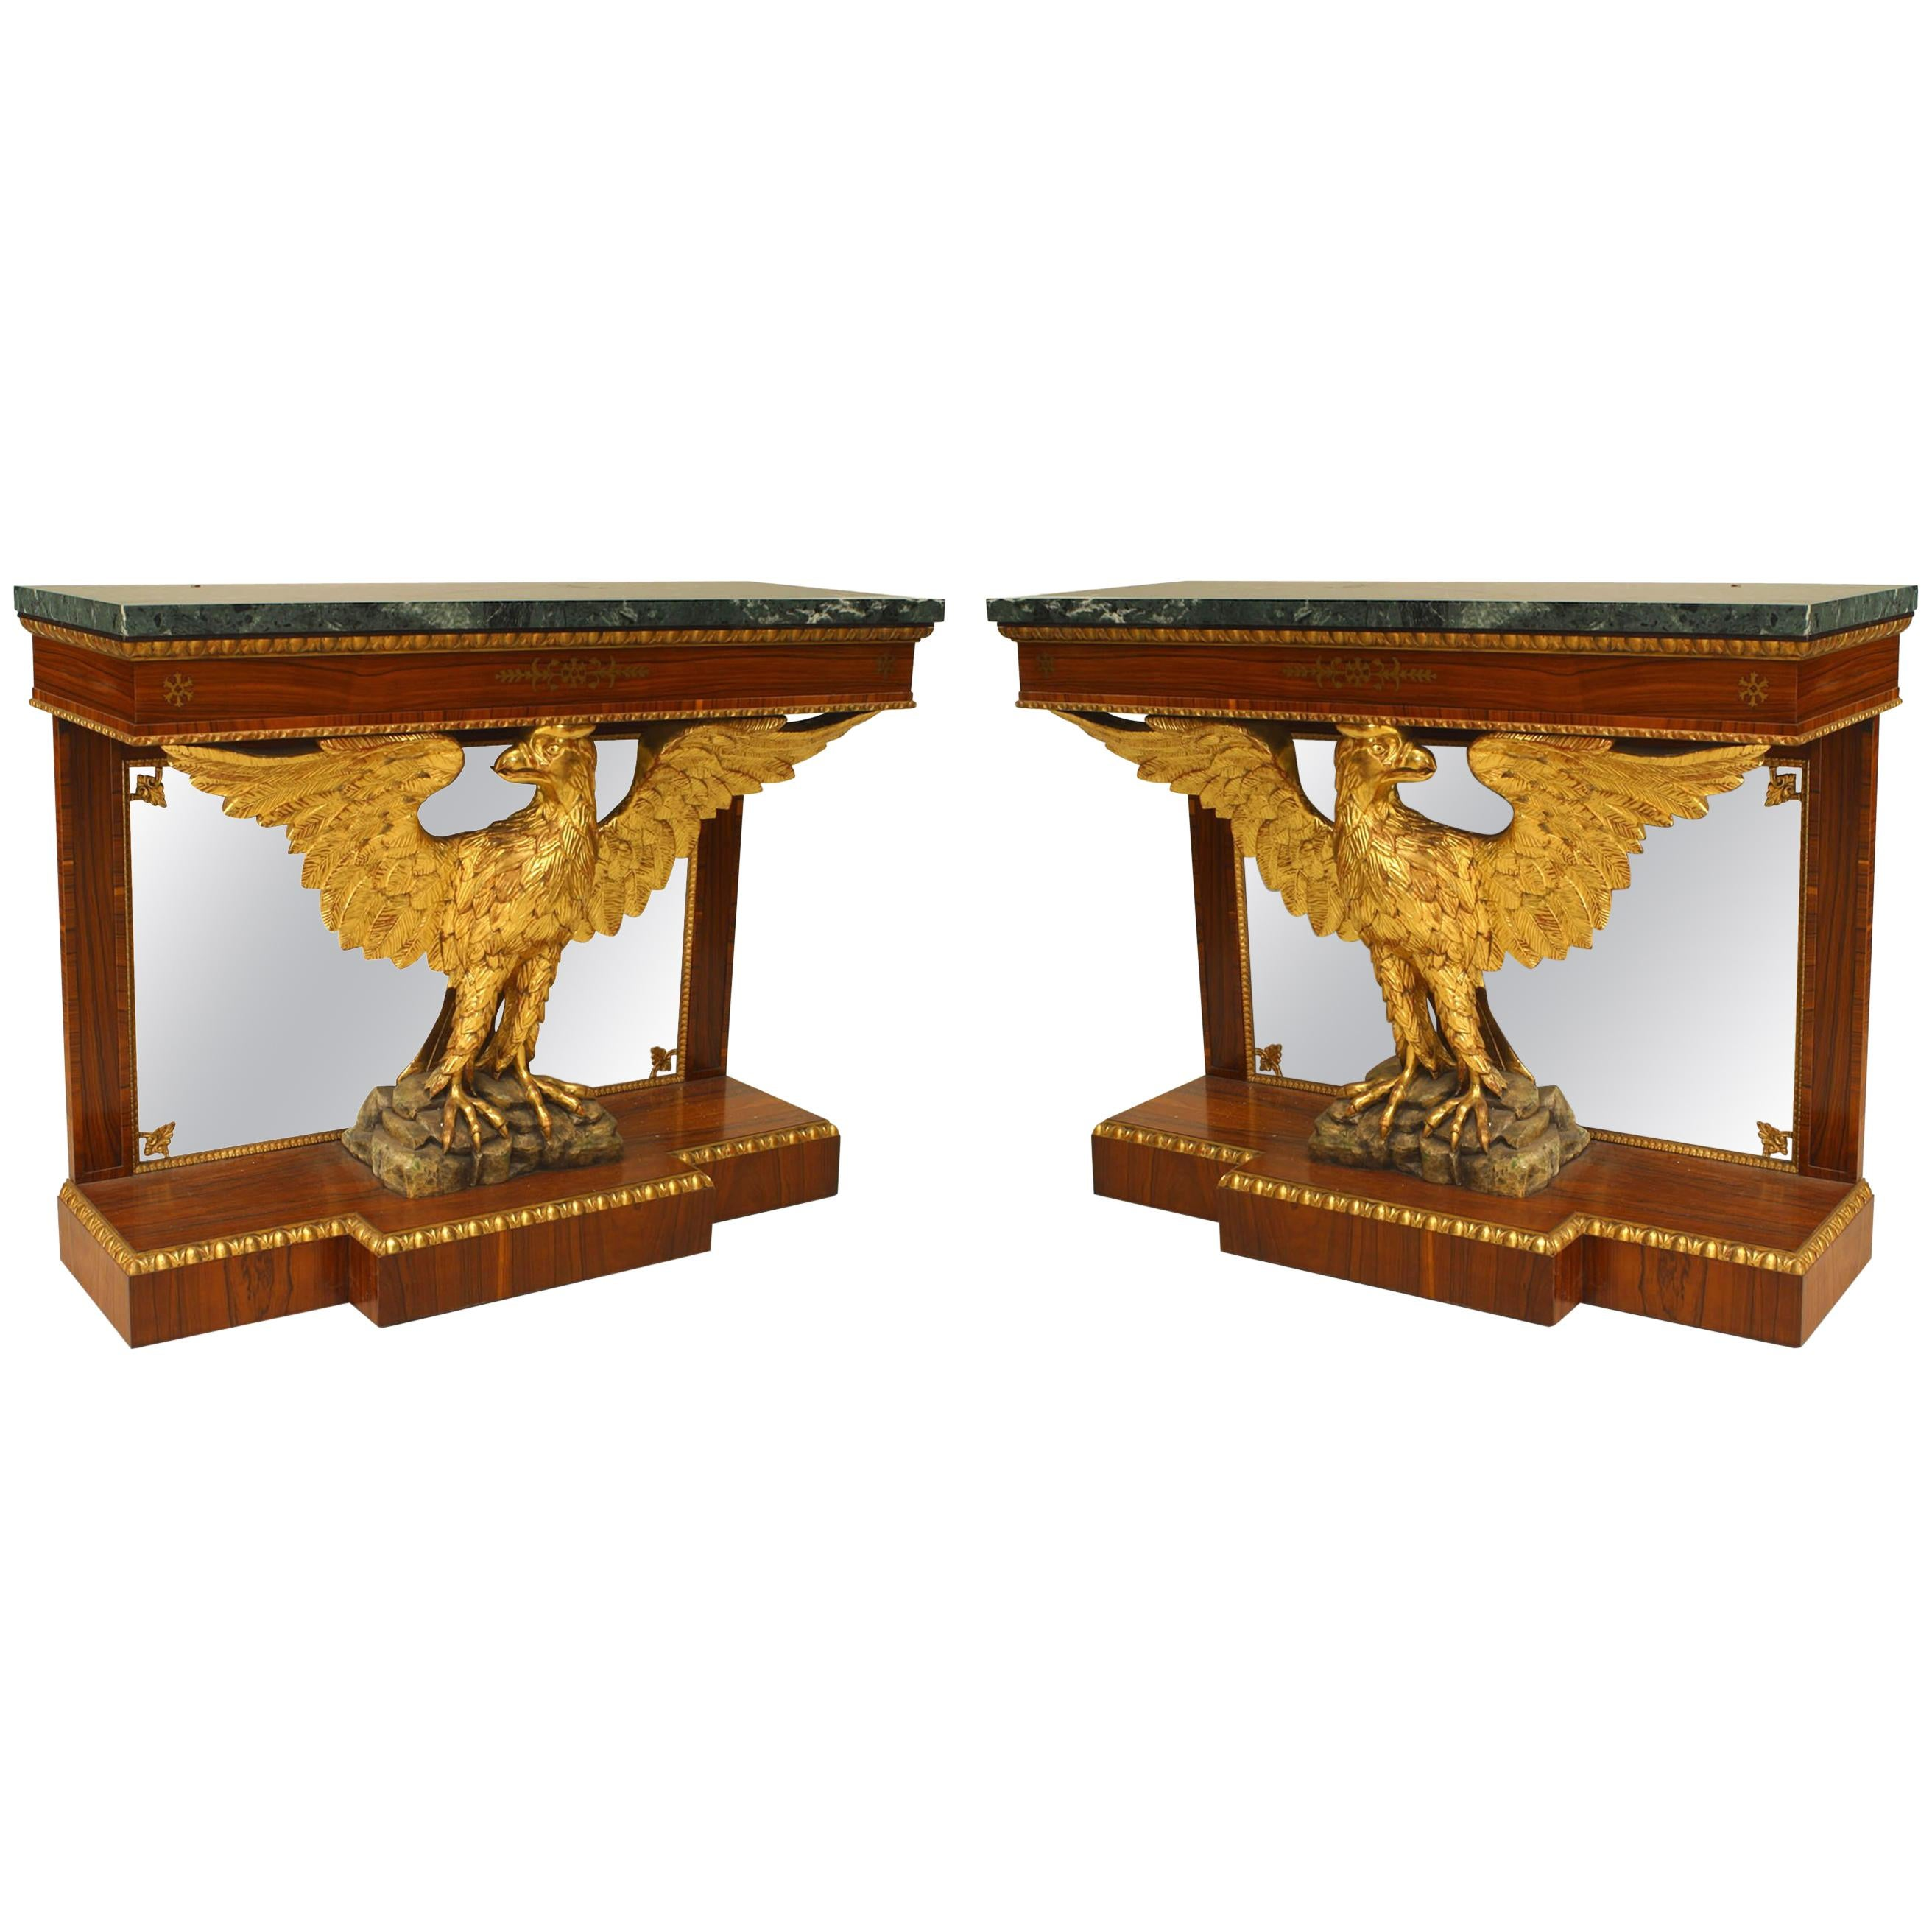 Pair of English Regency Style Console Tables